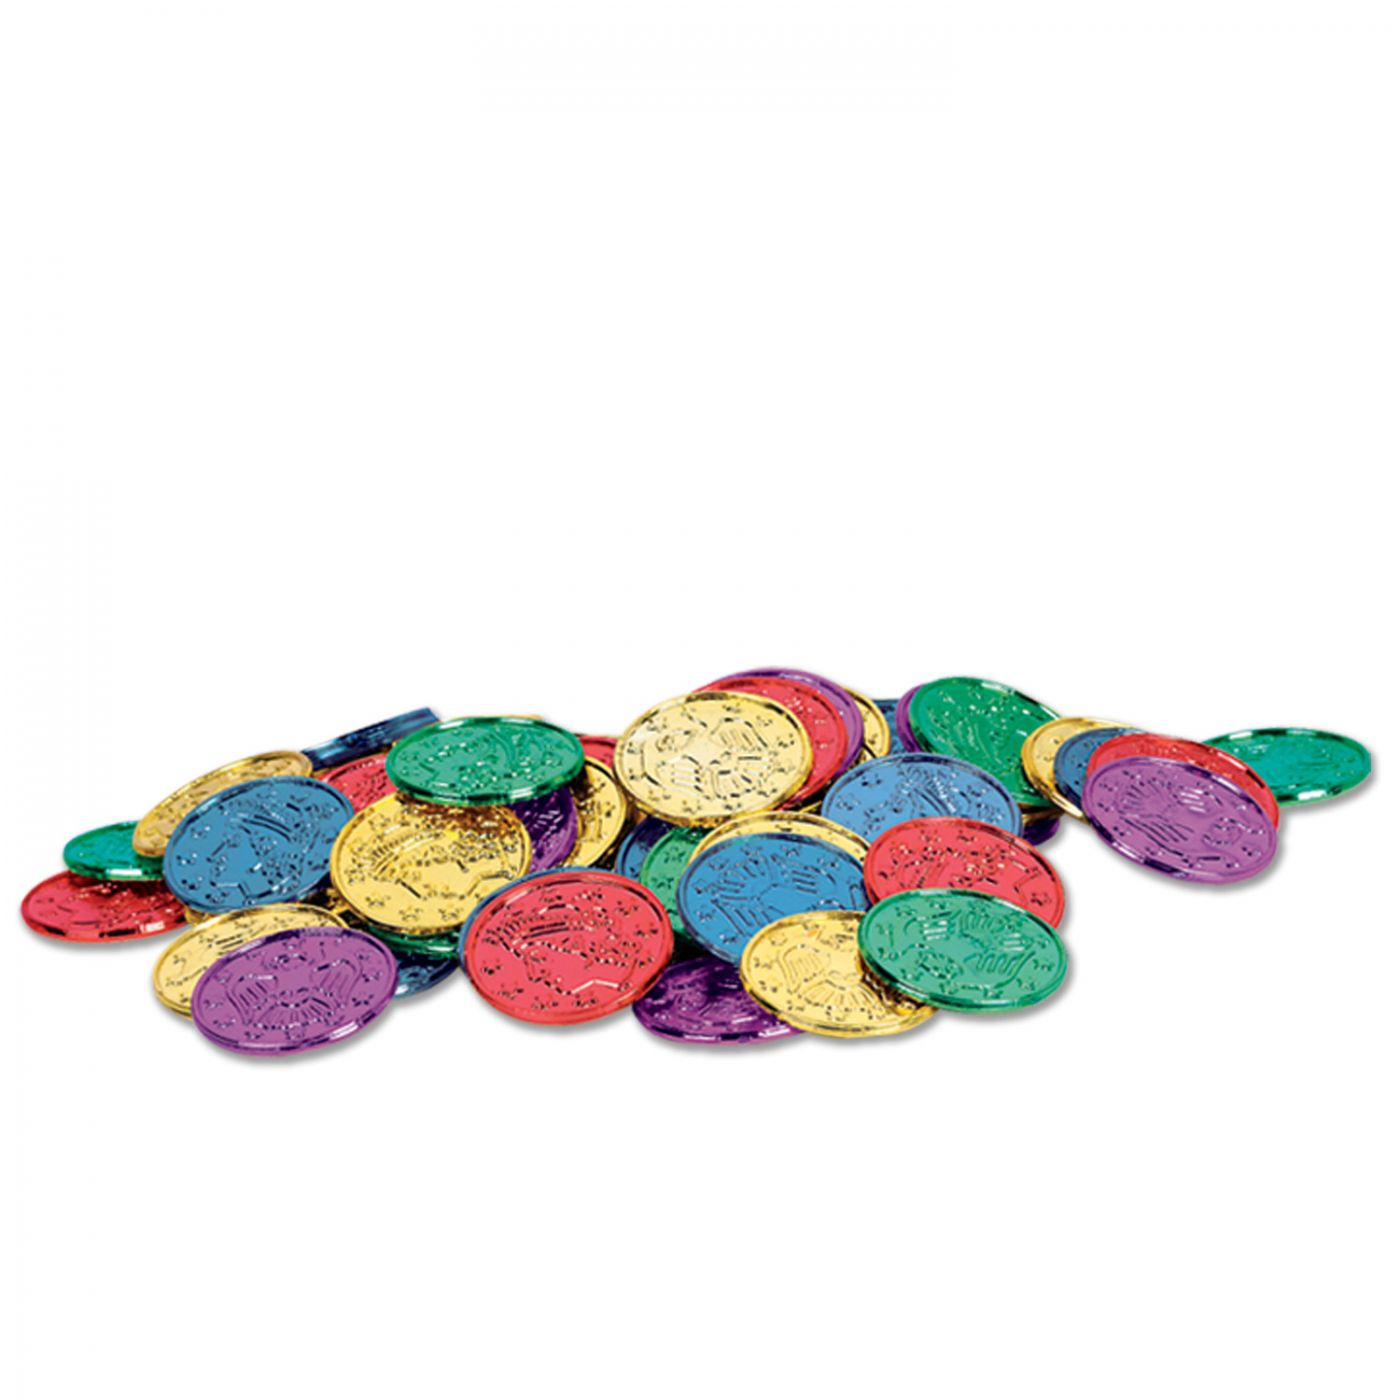 Plastic Coins image